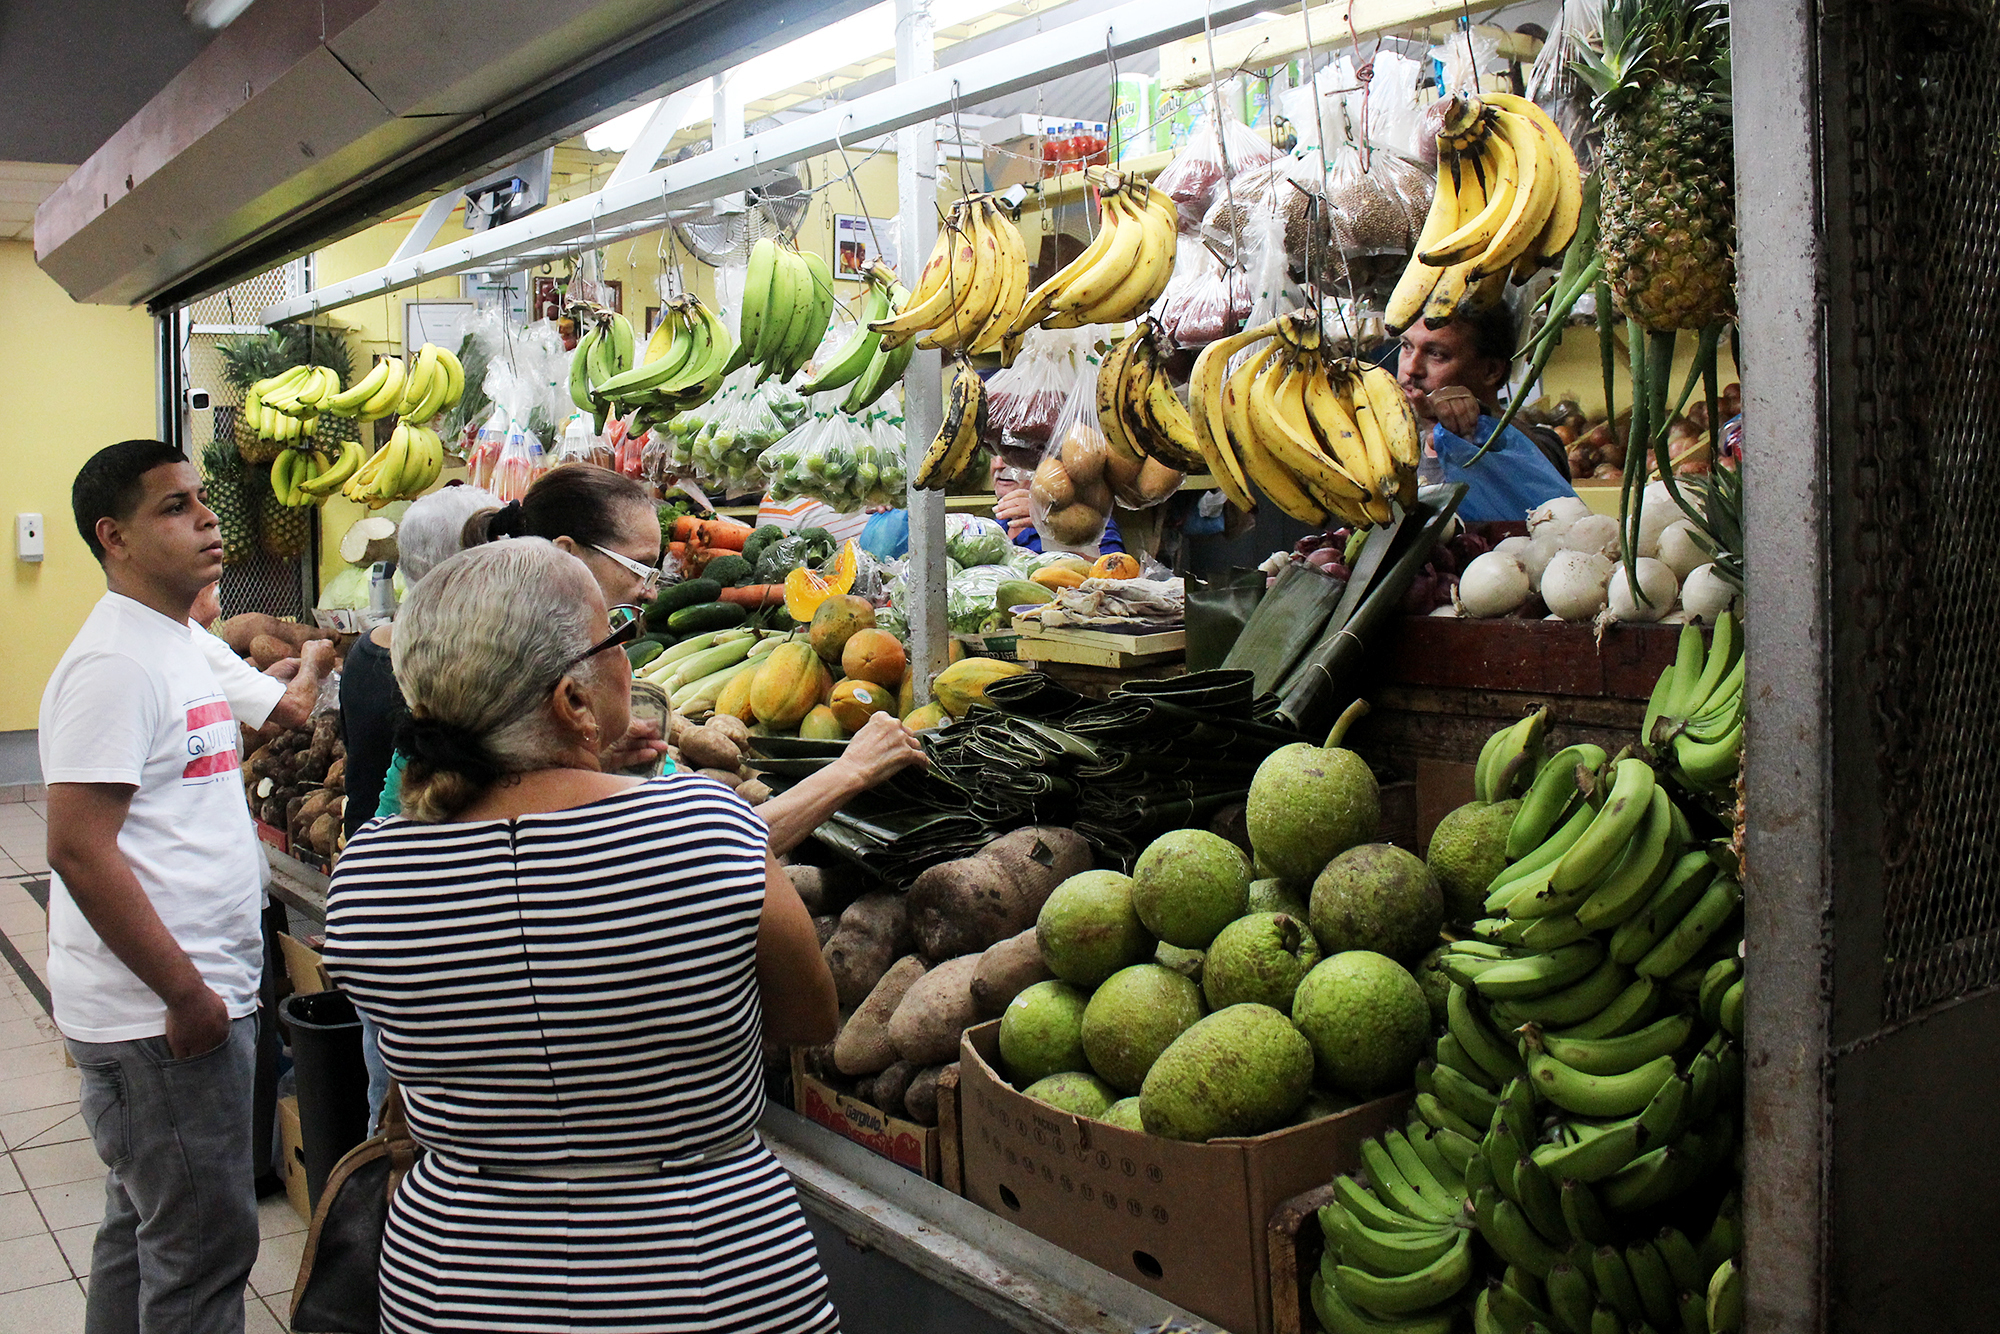 Shoppers at the market in Mayagüez, Puerto Rico, can choose from many more varieties of banana than what's available in the U.S.